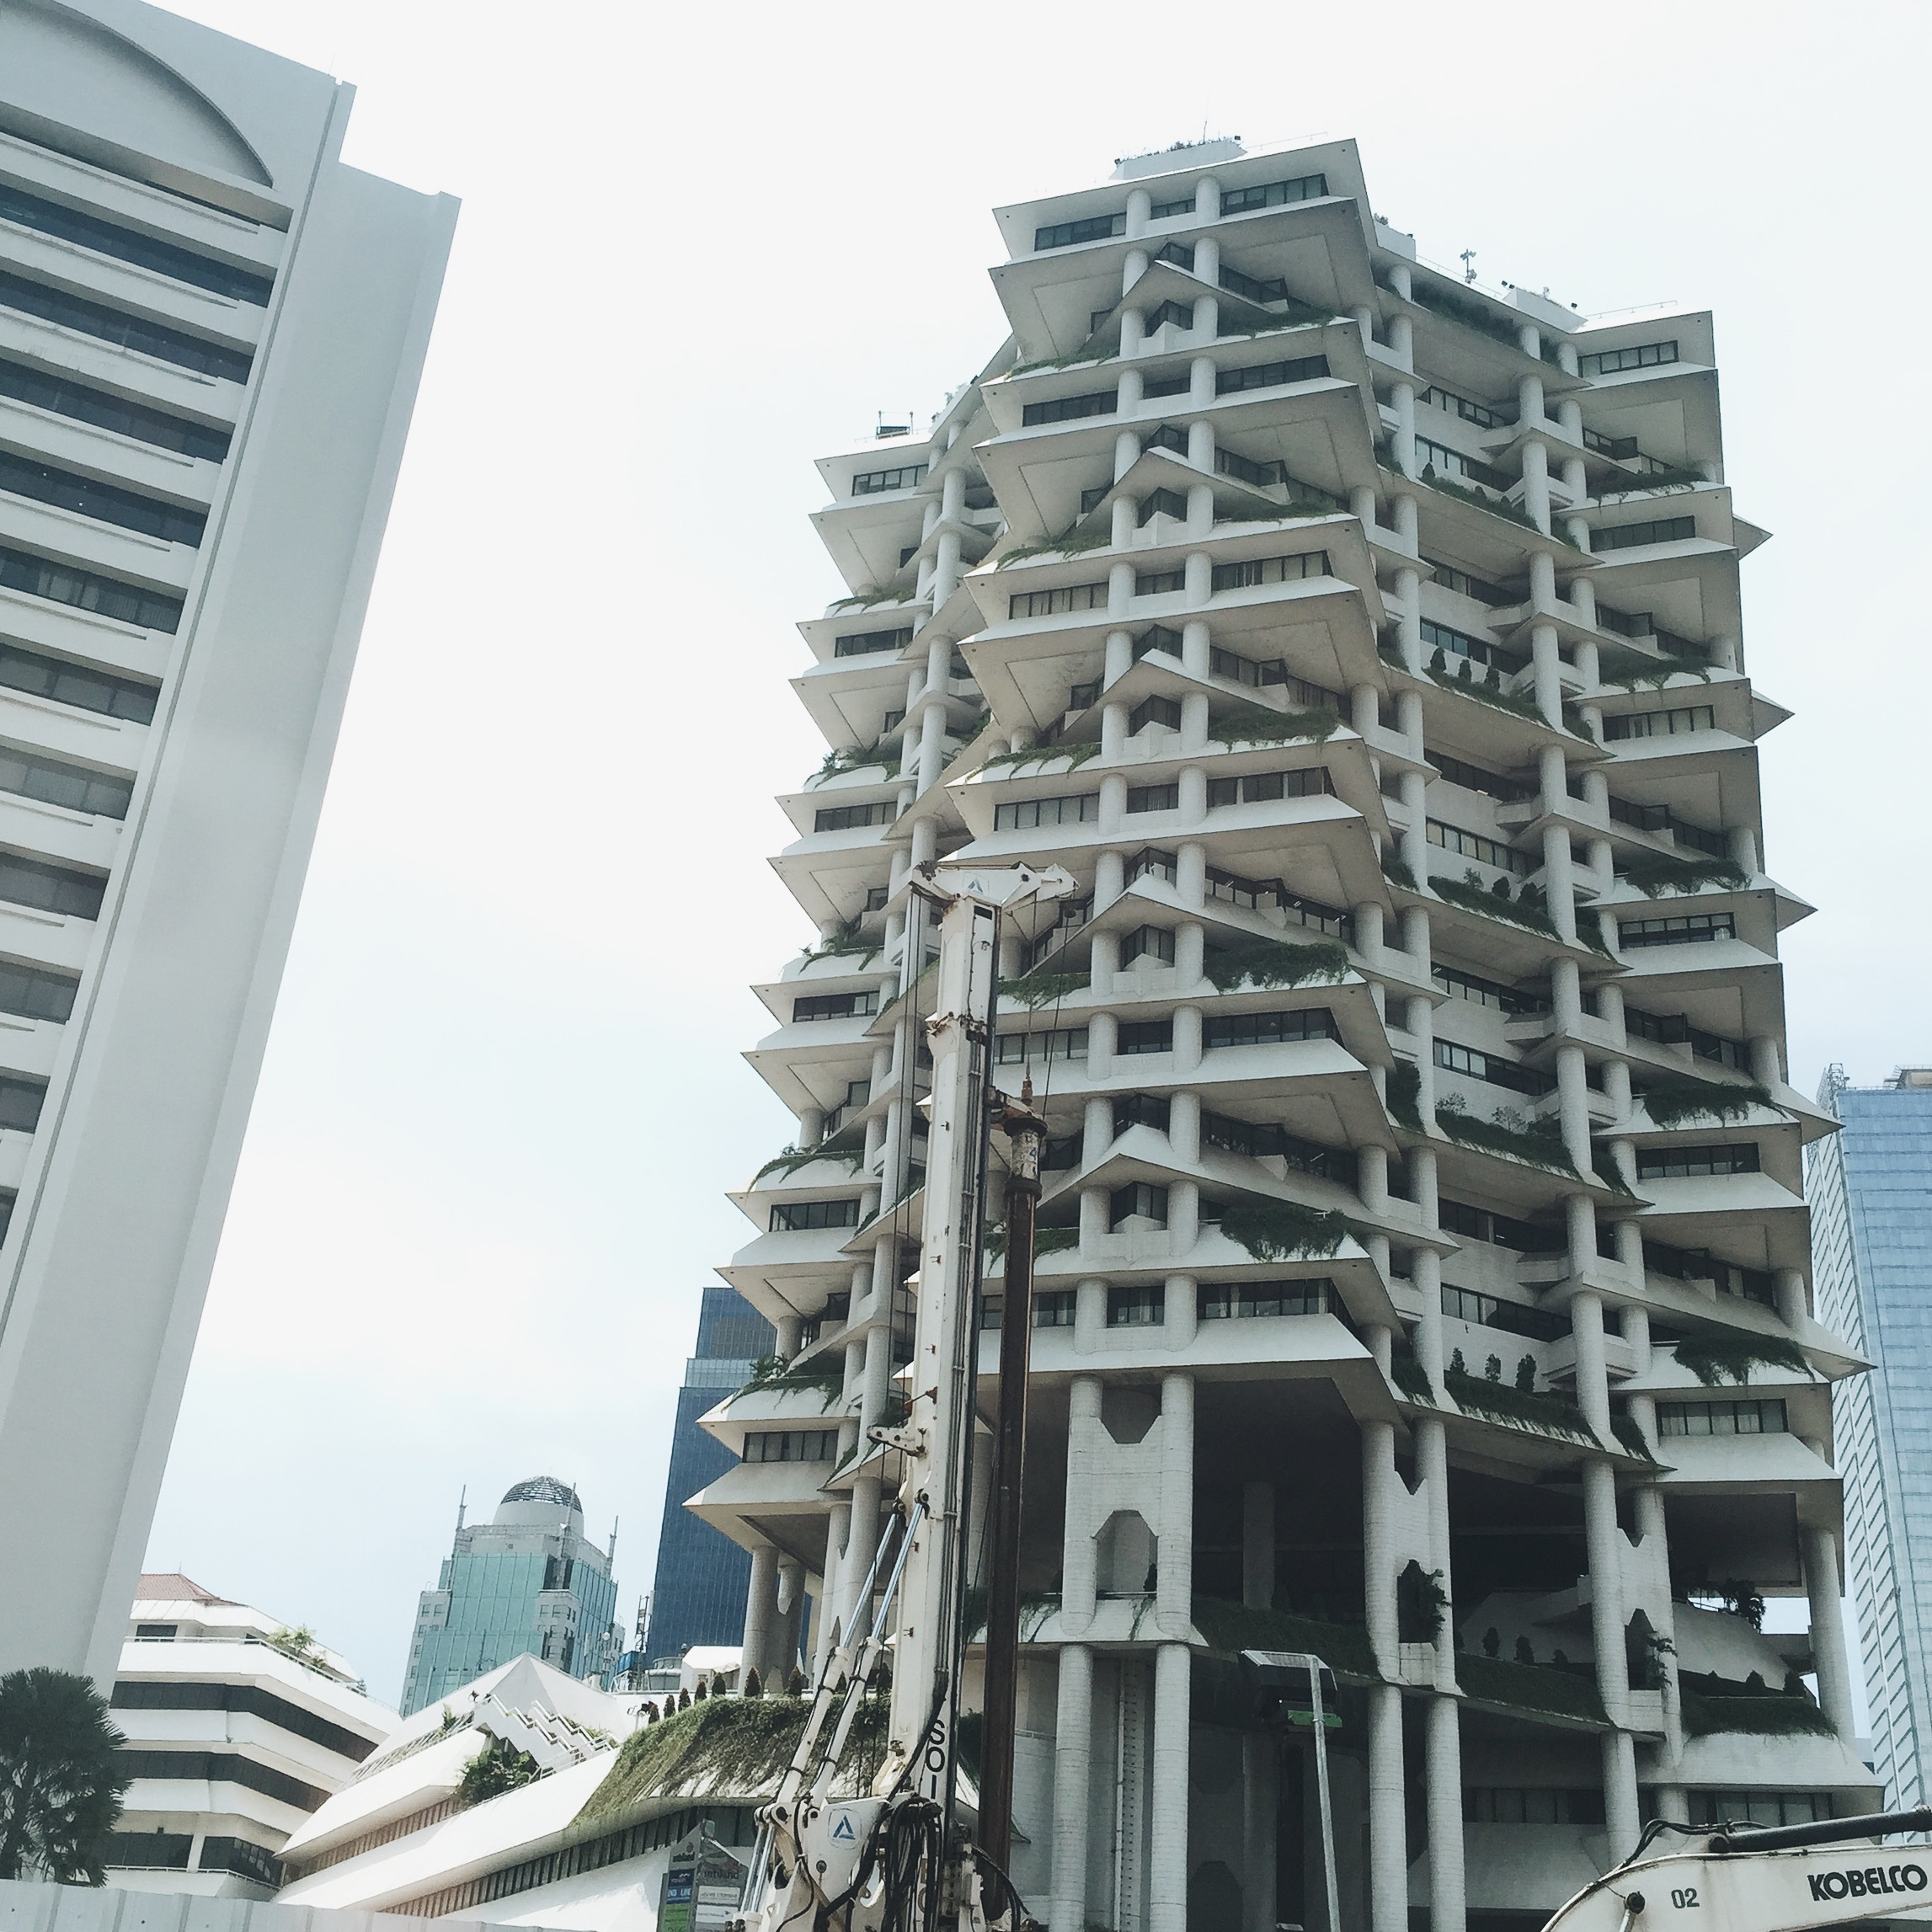 The Intiland Tower, designed by Paul Rudolph in 1986, as seen from my taxi while sitting in grid-lock traffic.